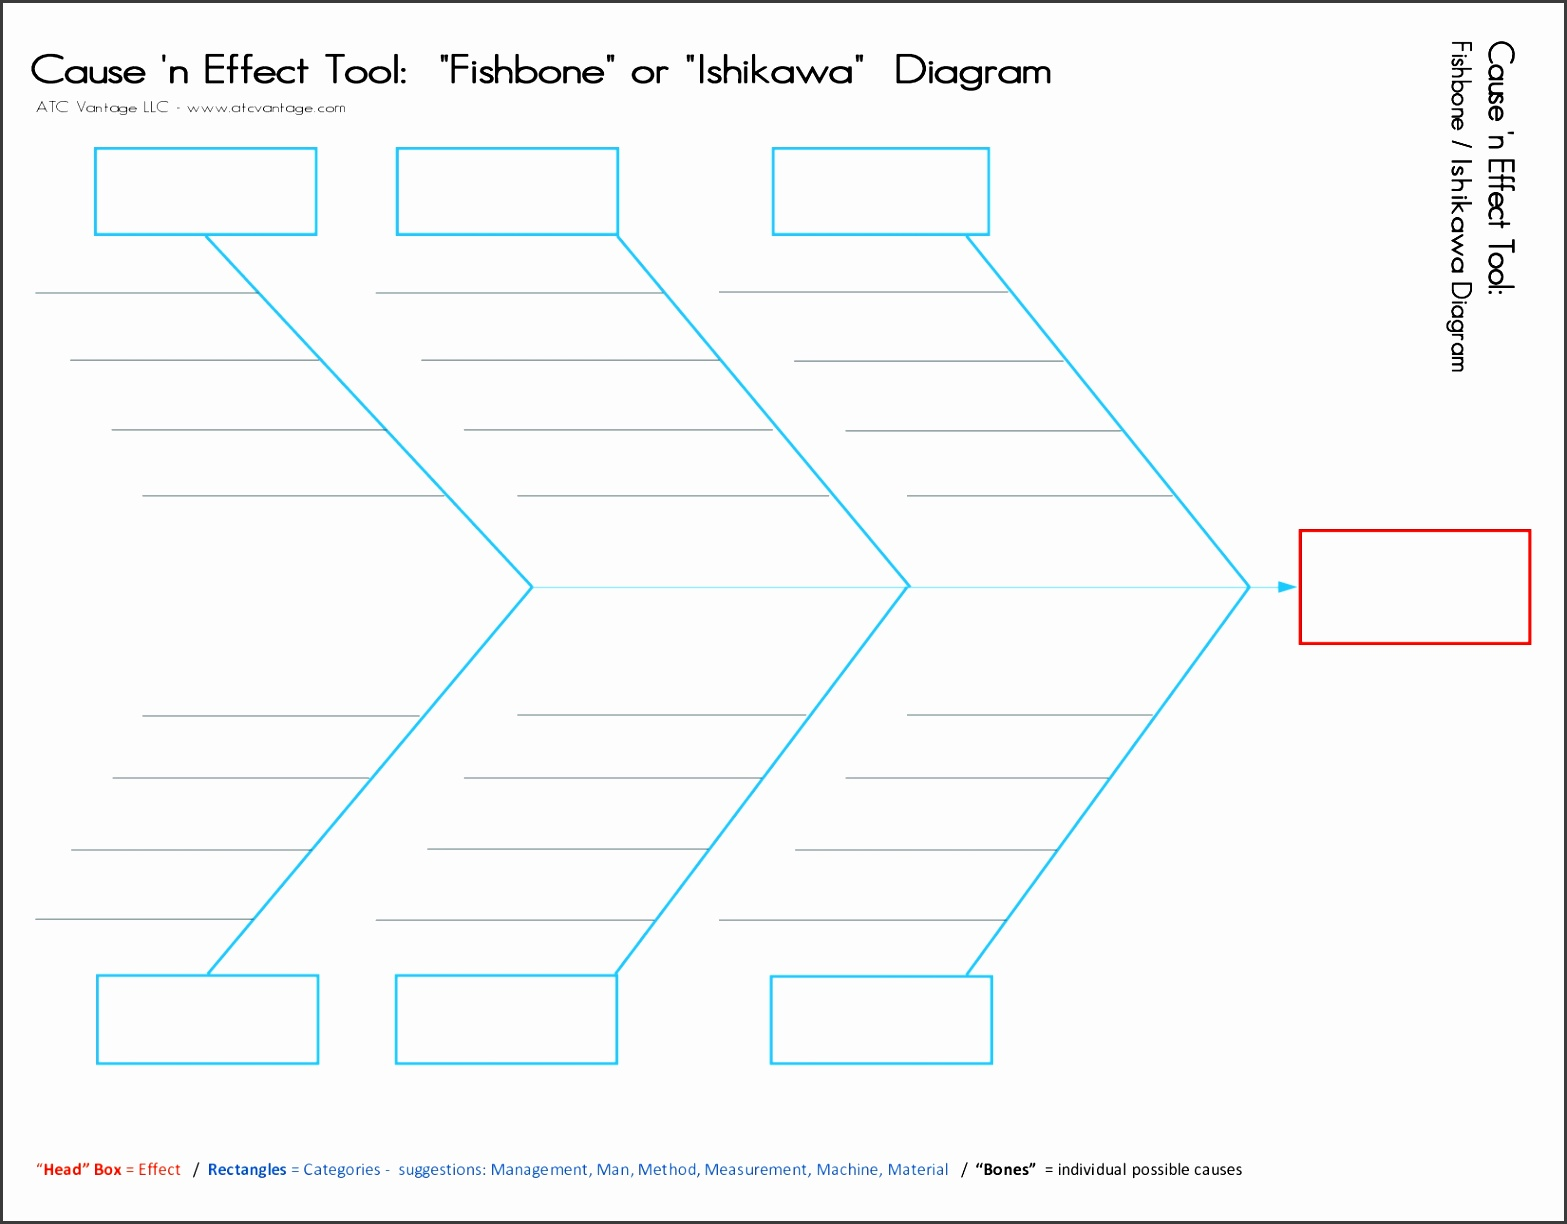 7 Fishbone Root Cause Analysis Template - Sampletemplatess